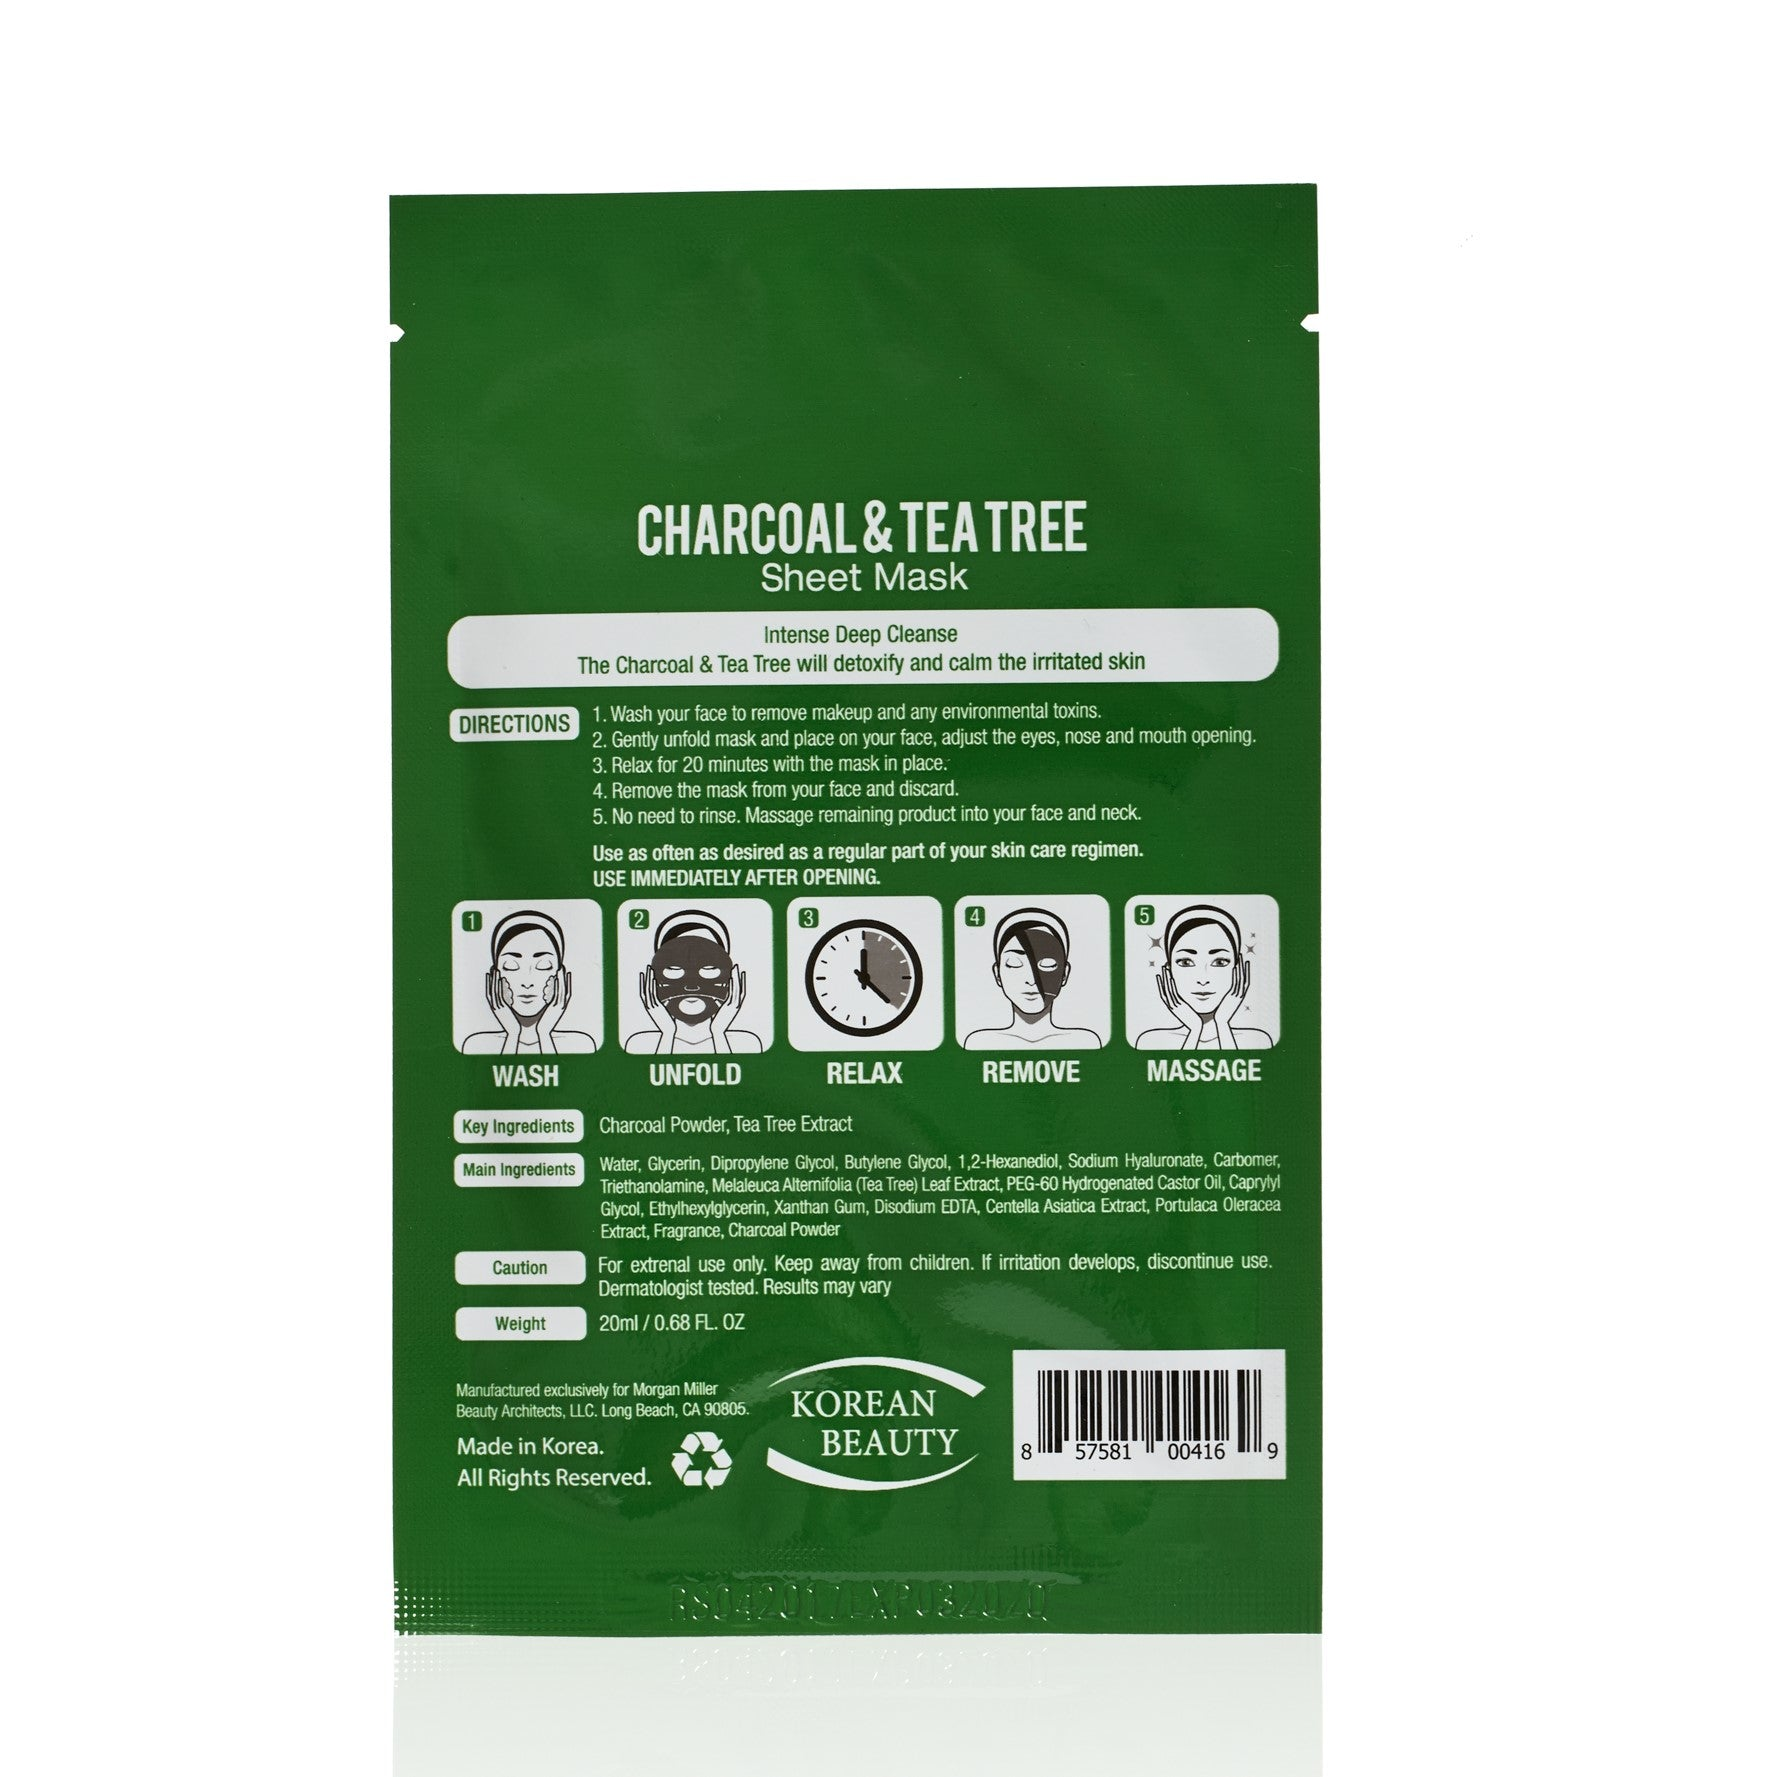 Back of Morgan Miller Charcoal & Tea Tree packaging